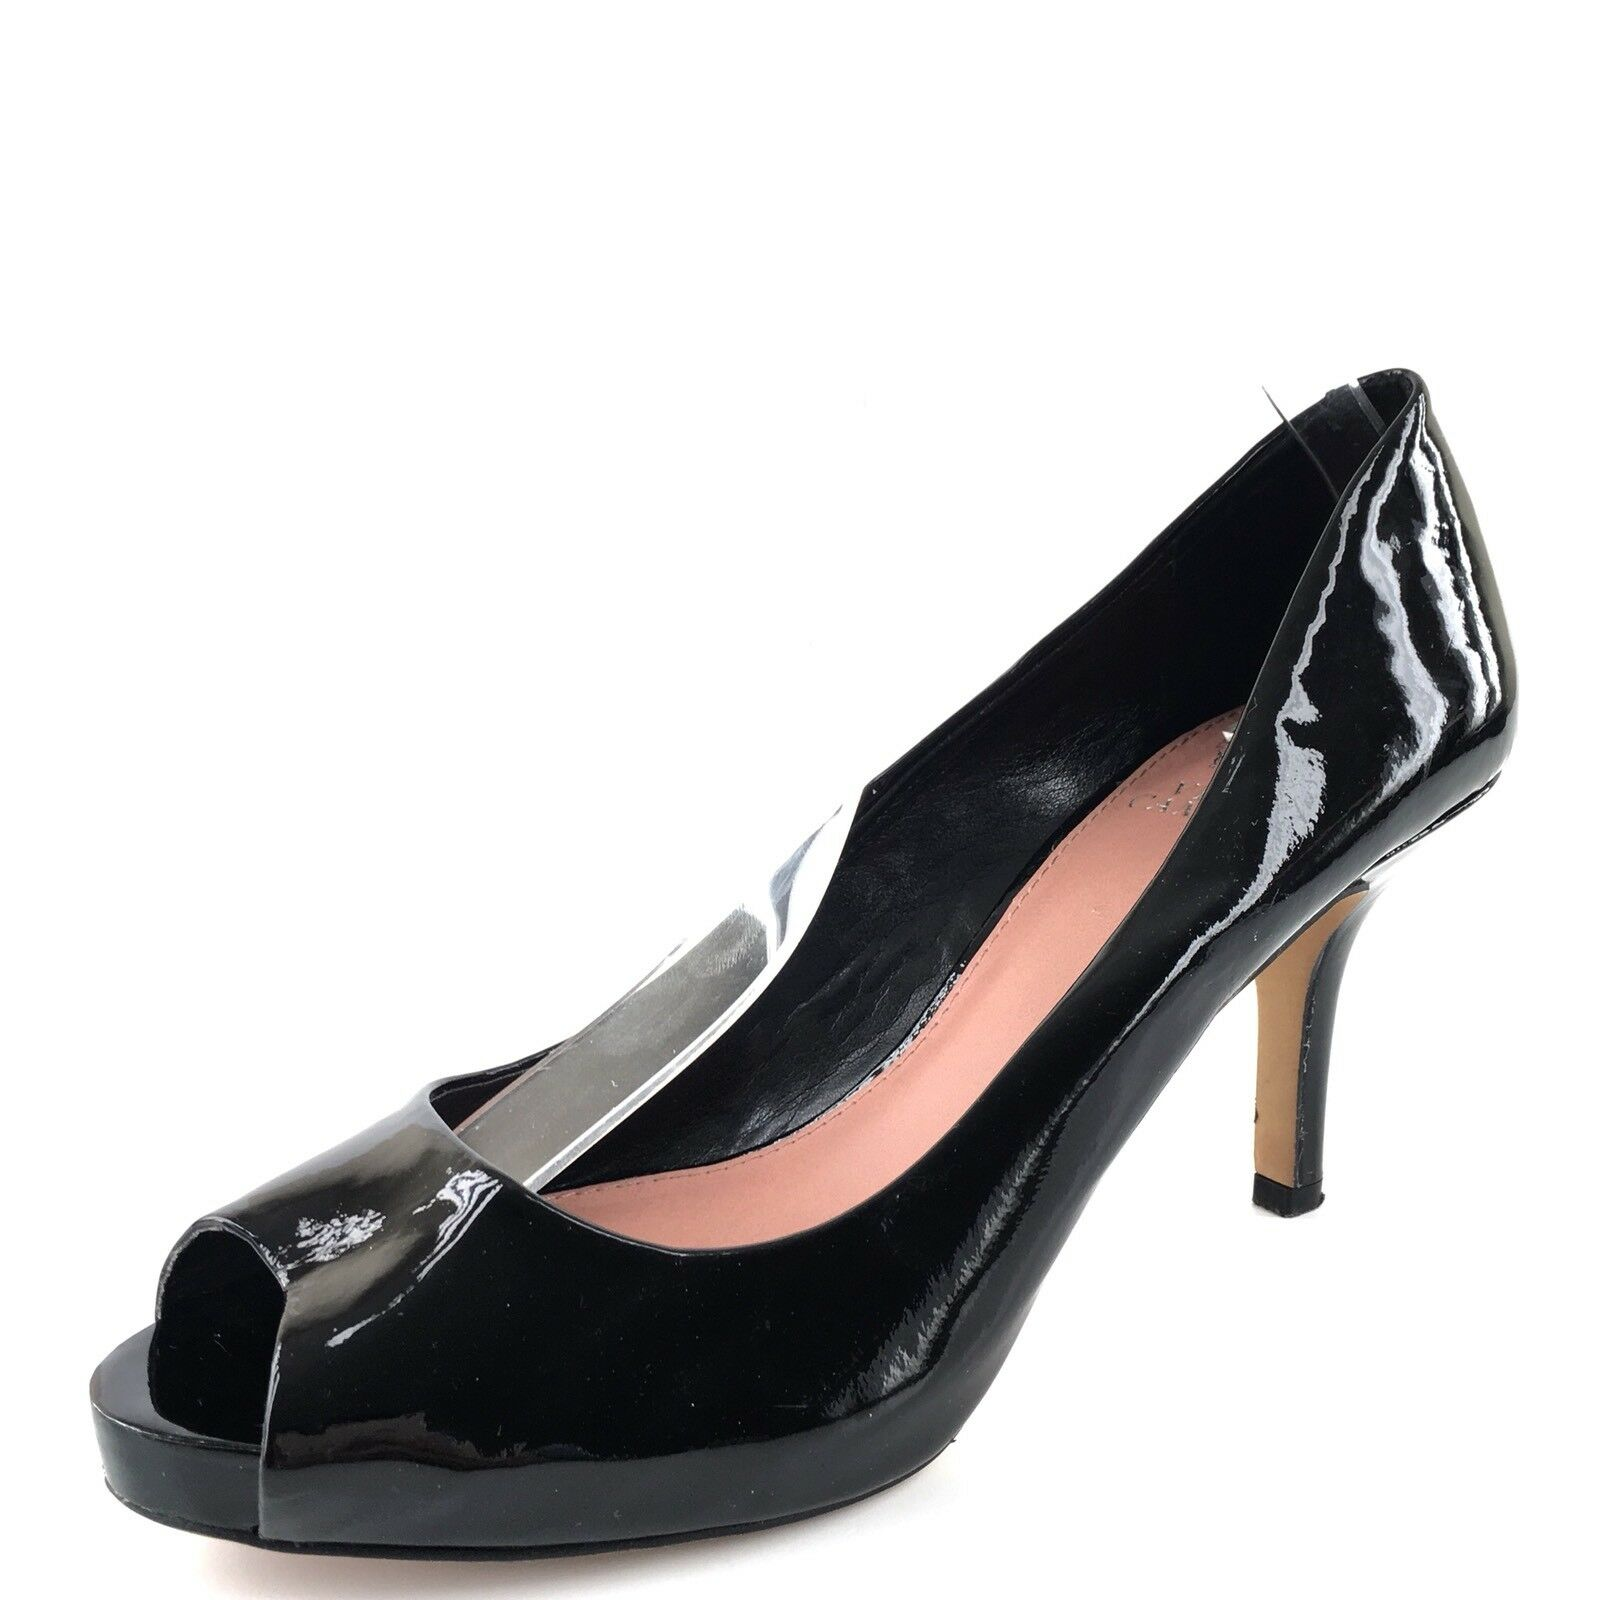 Vince Camuto Kira Black Patent Leather Open Toe Pumps Women's Size 8.5 M*